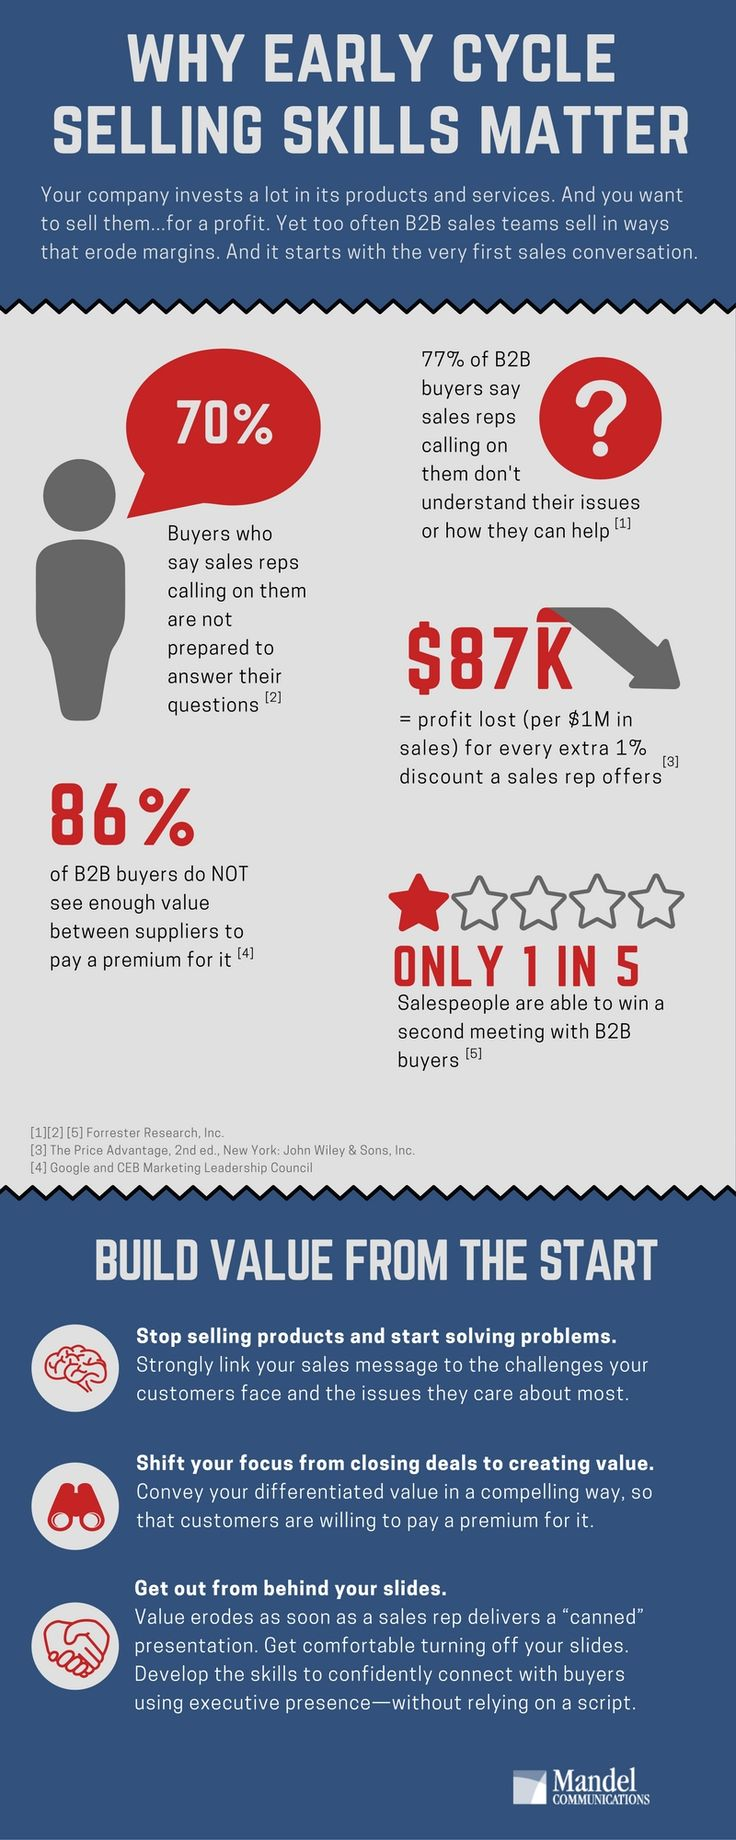 WHY EARLY SELLING SKILLS MATTER!